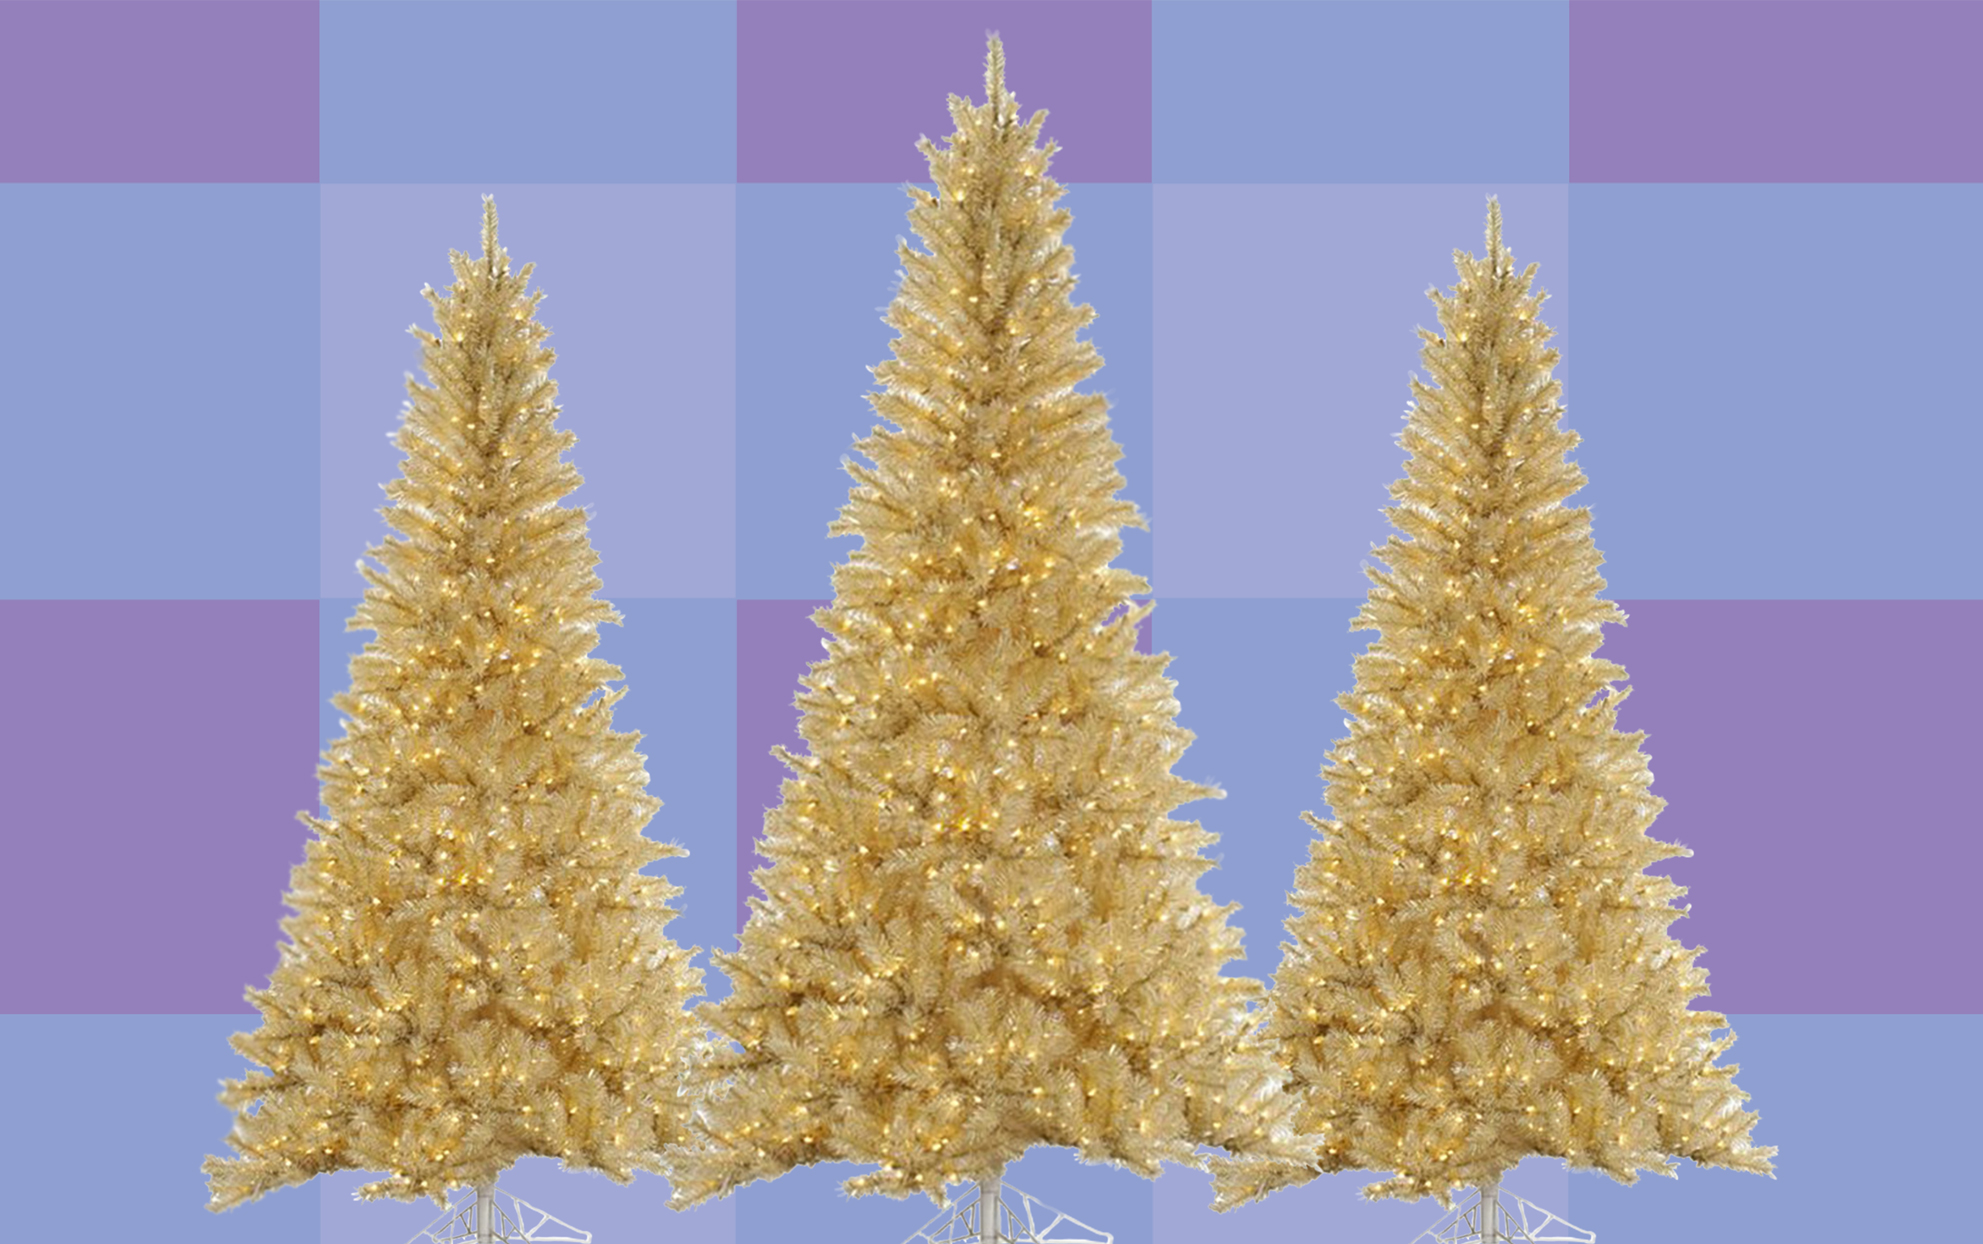 Three gold Christmas trees with lights on a colored background